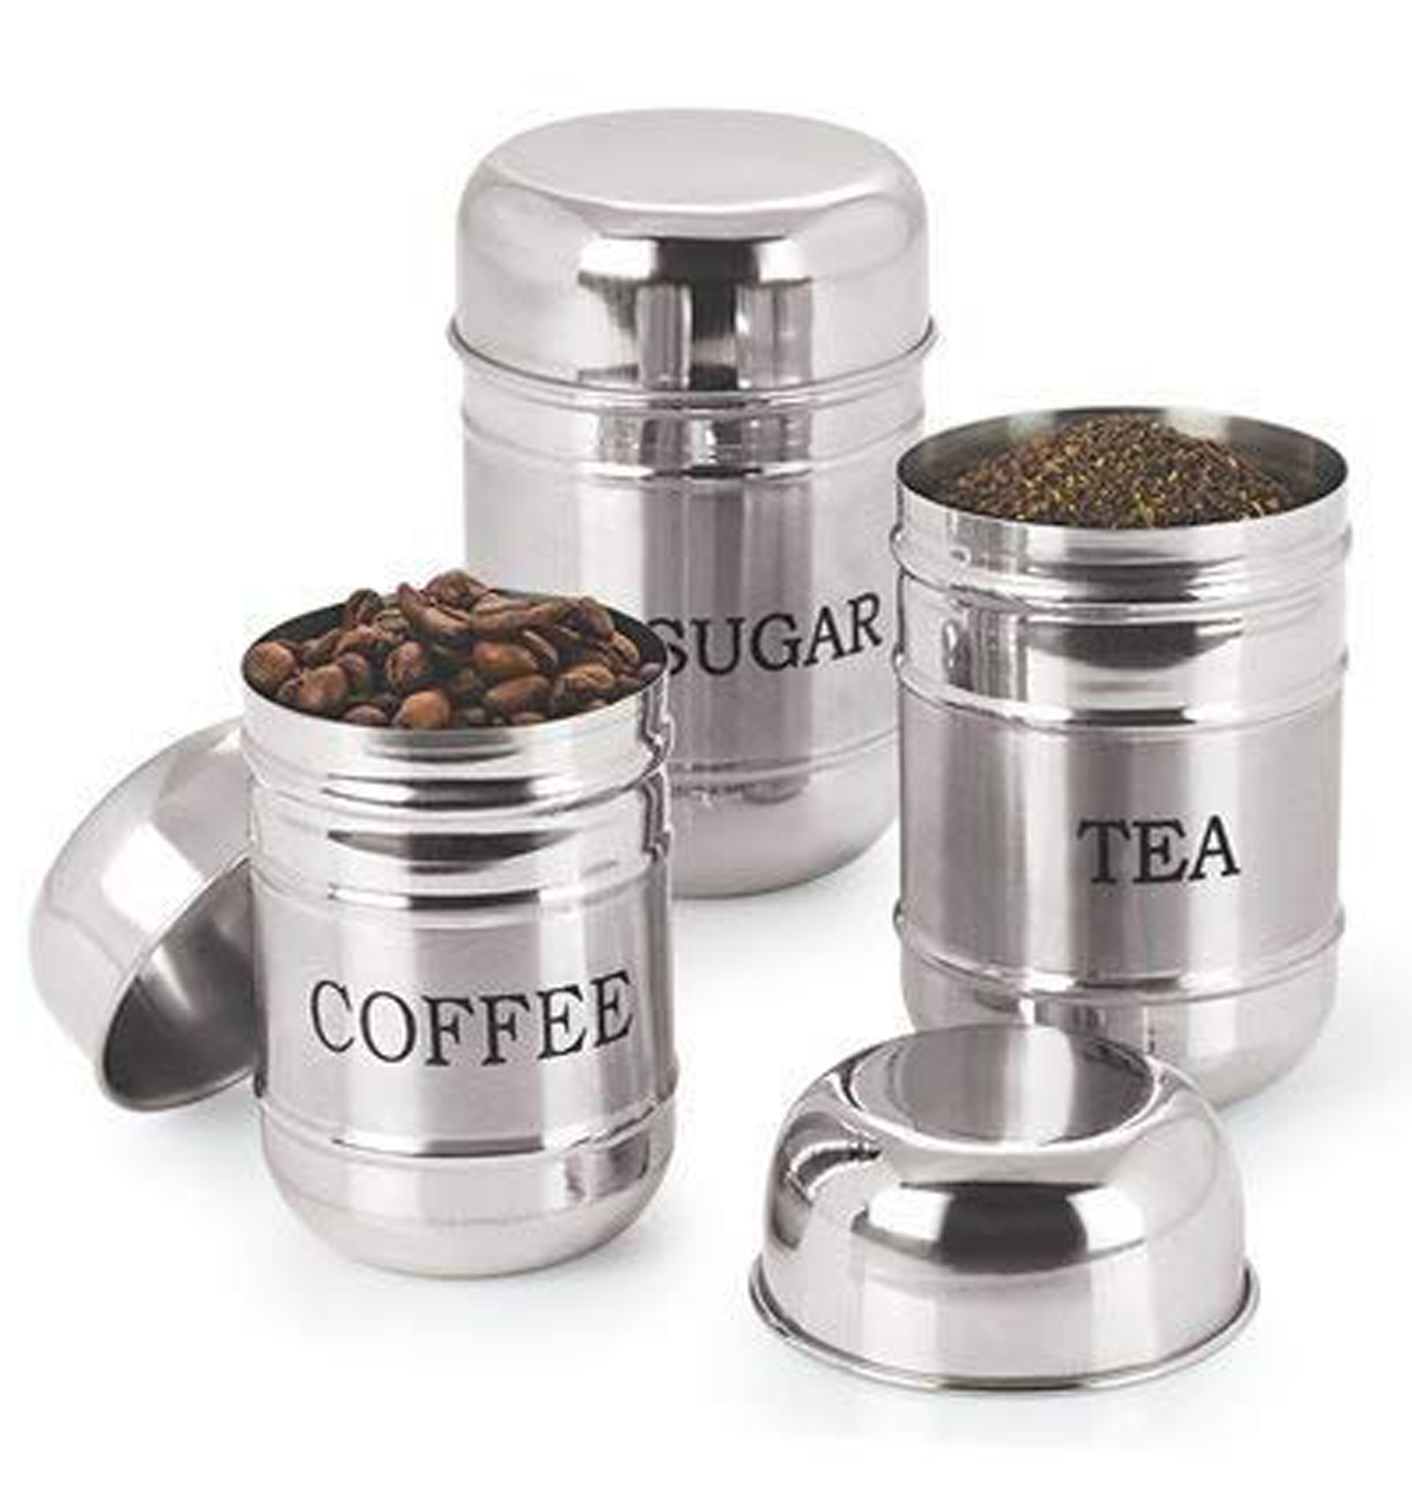 Kuber Industries 3 Pieces Stainless Steel Tea,Coffee And Sugar Container set, 500Ml,300Ml,200 Ml (Silver) -CTKTC38138